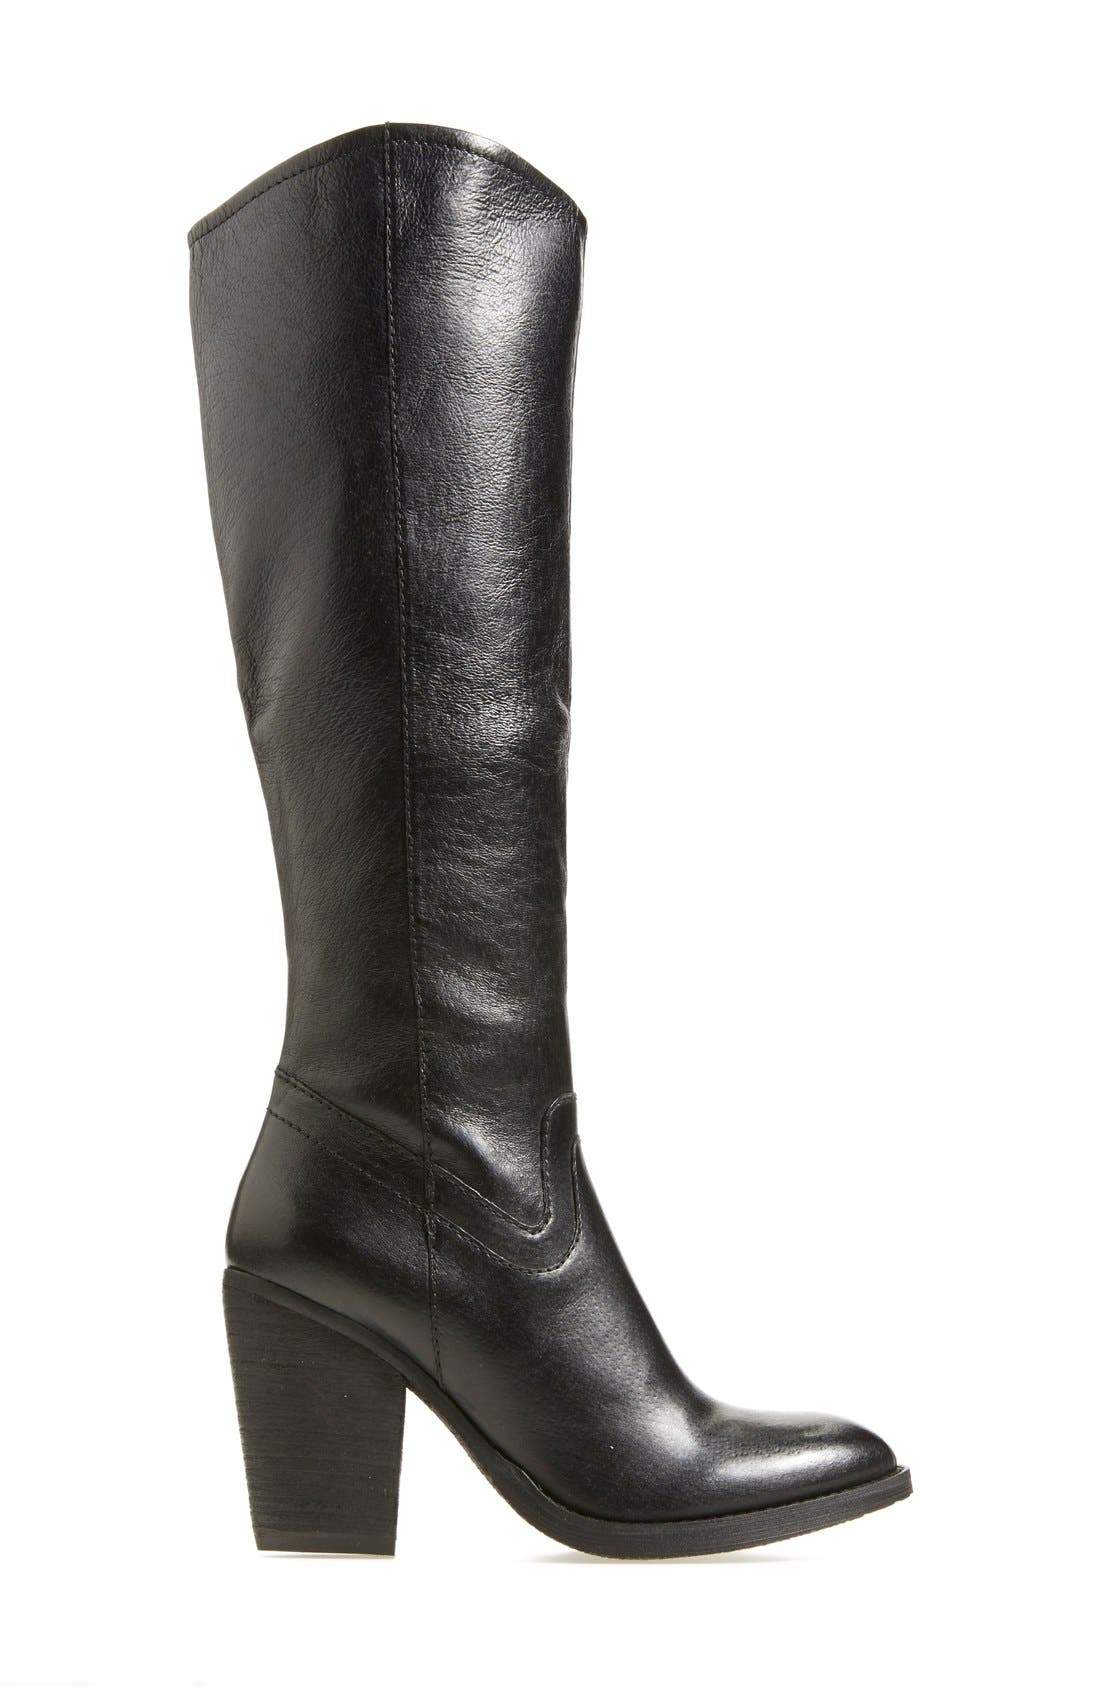 'Carrter' Knee High Leather Boot,                             Alternate thumbnail 6, color,                             001